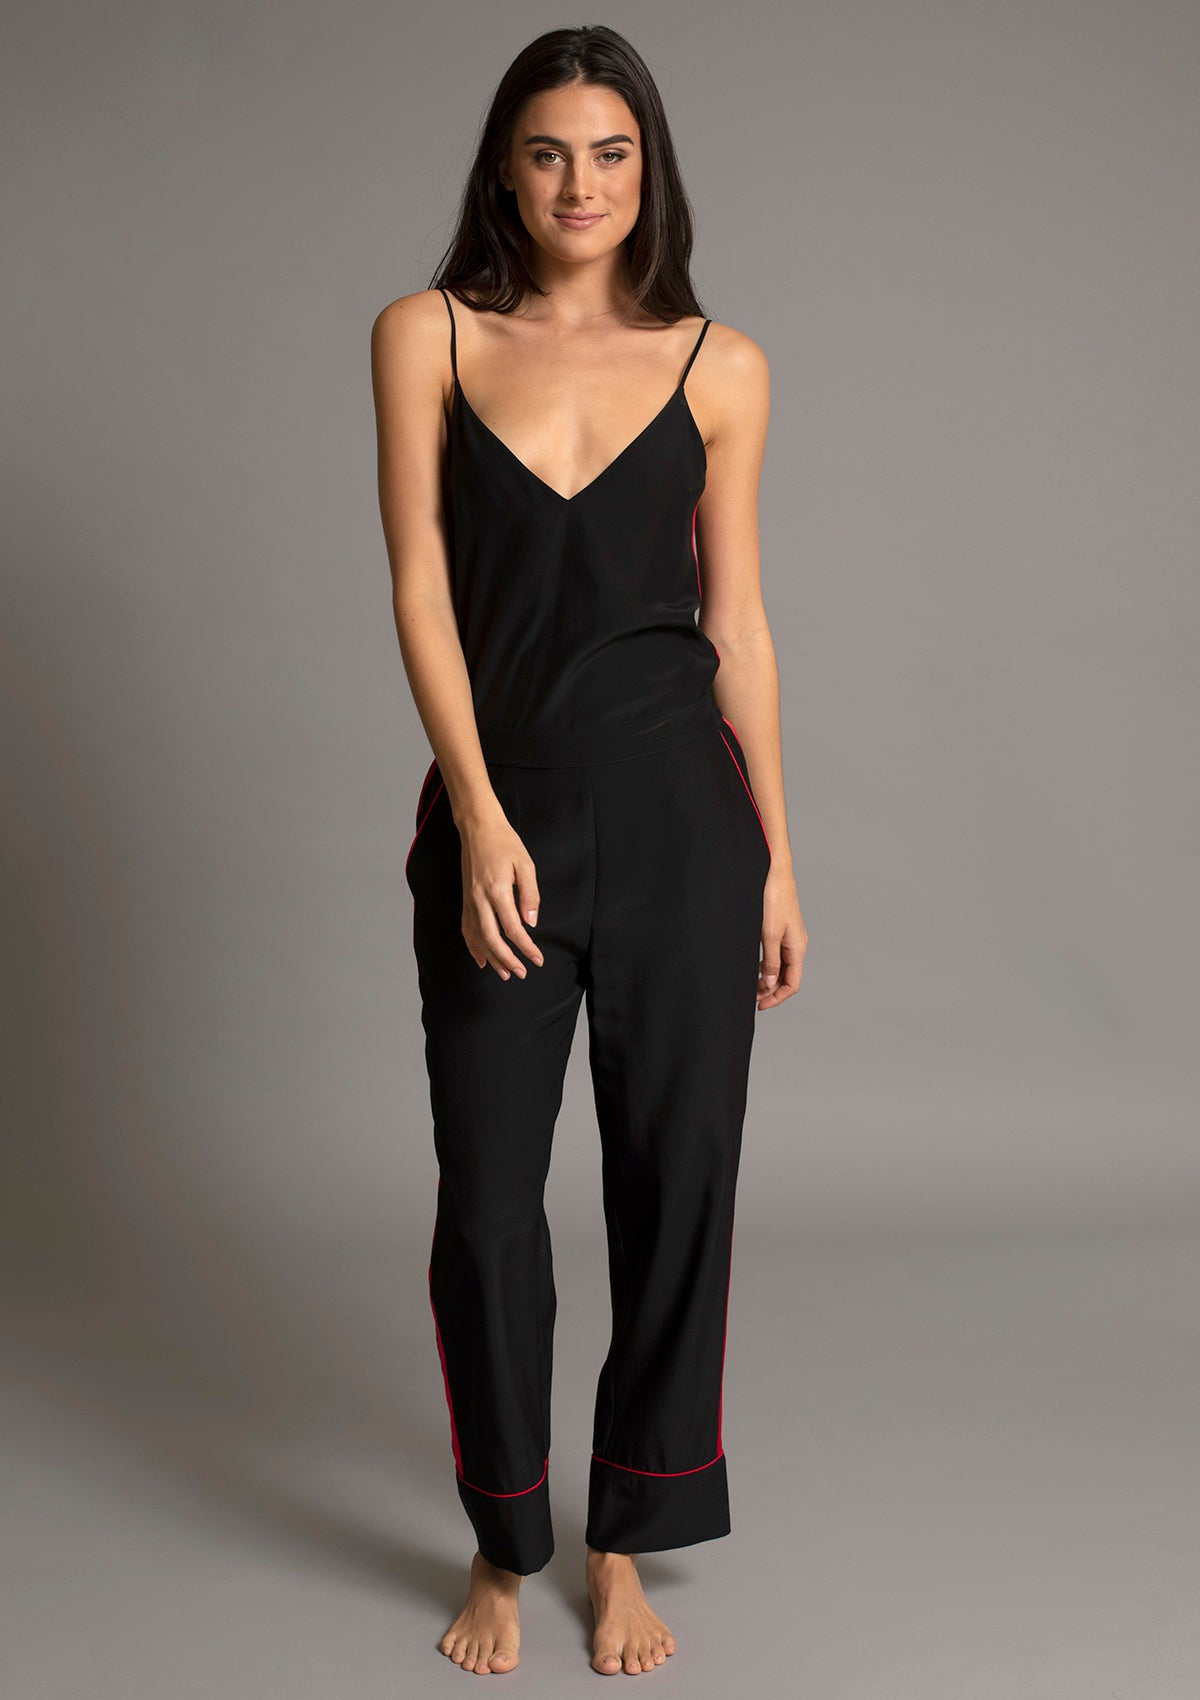 MARILYN V NECK CAMISOLE in NOIR w ROUGE TUXEDO STRIPE